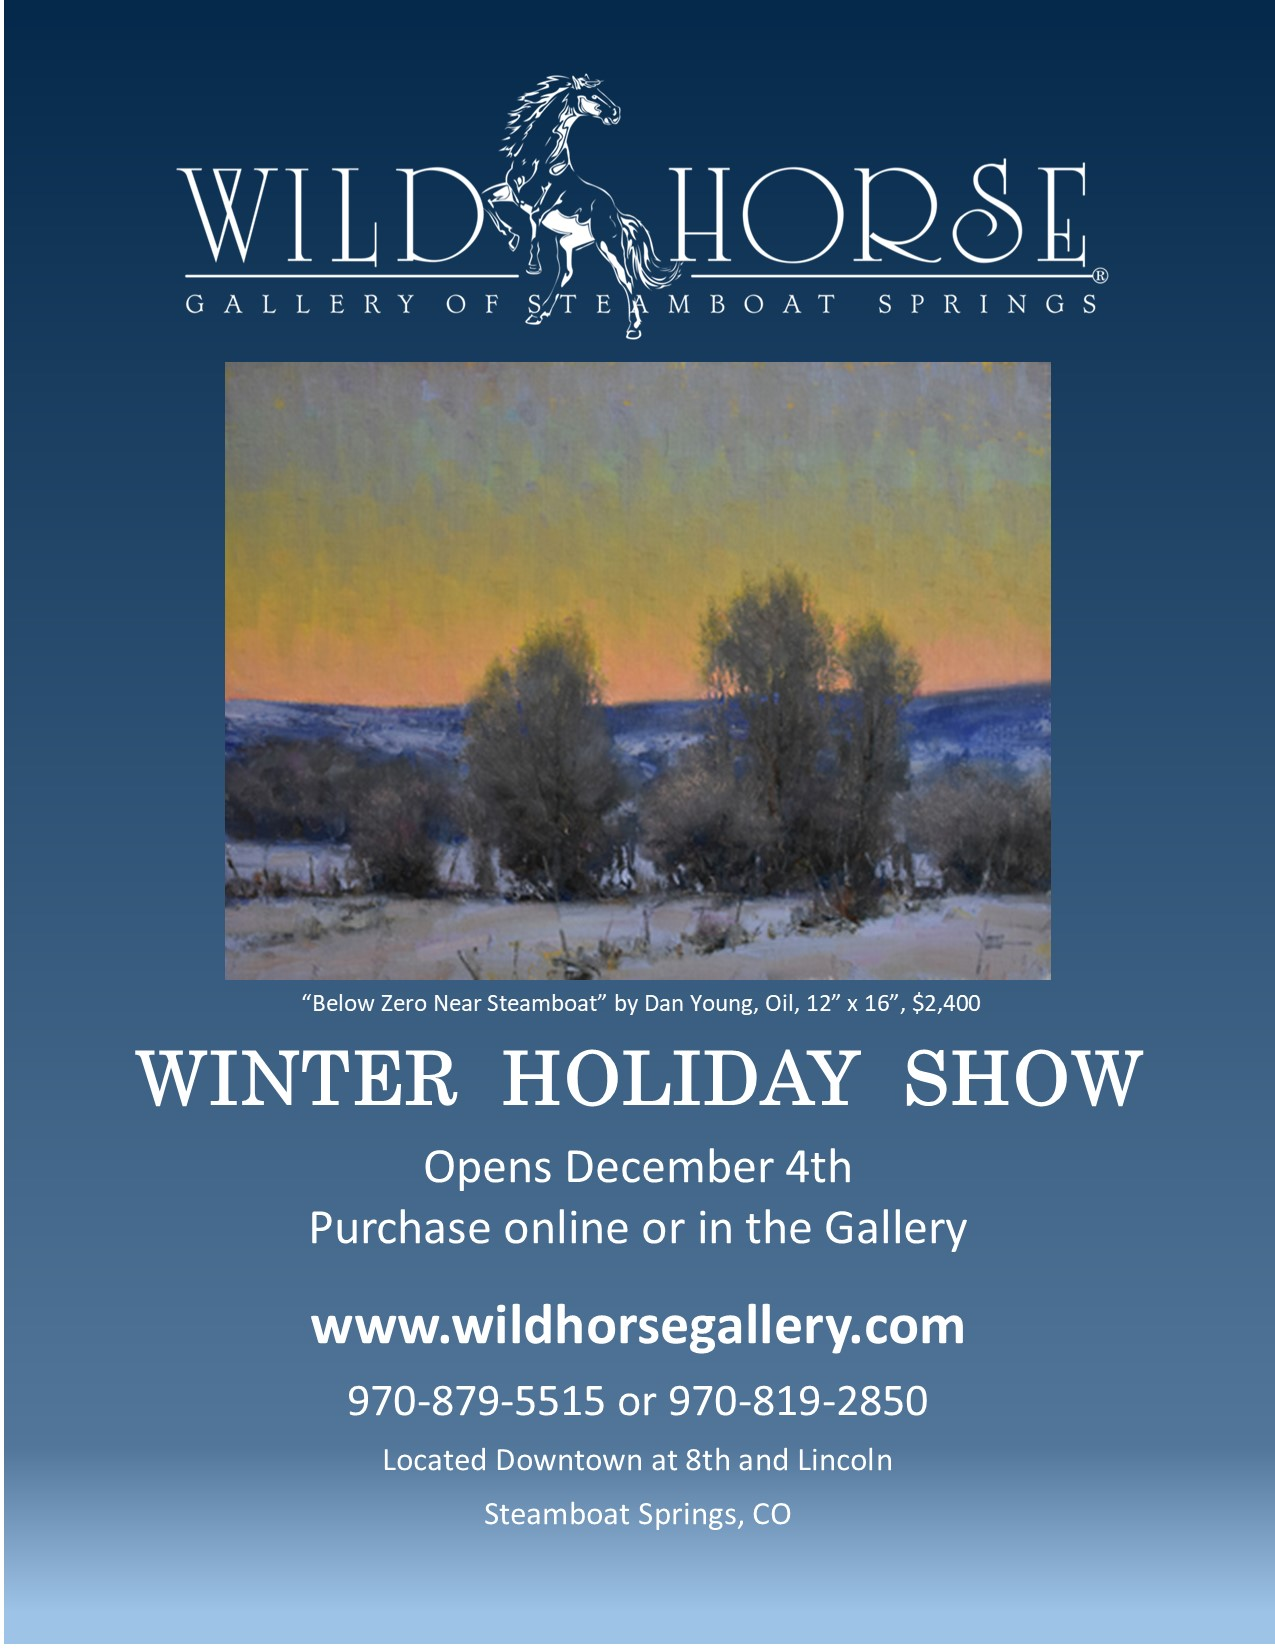 Winter Holiday Show